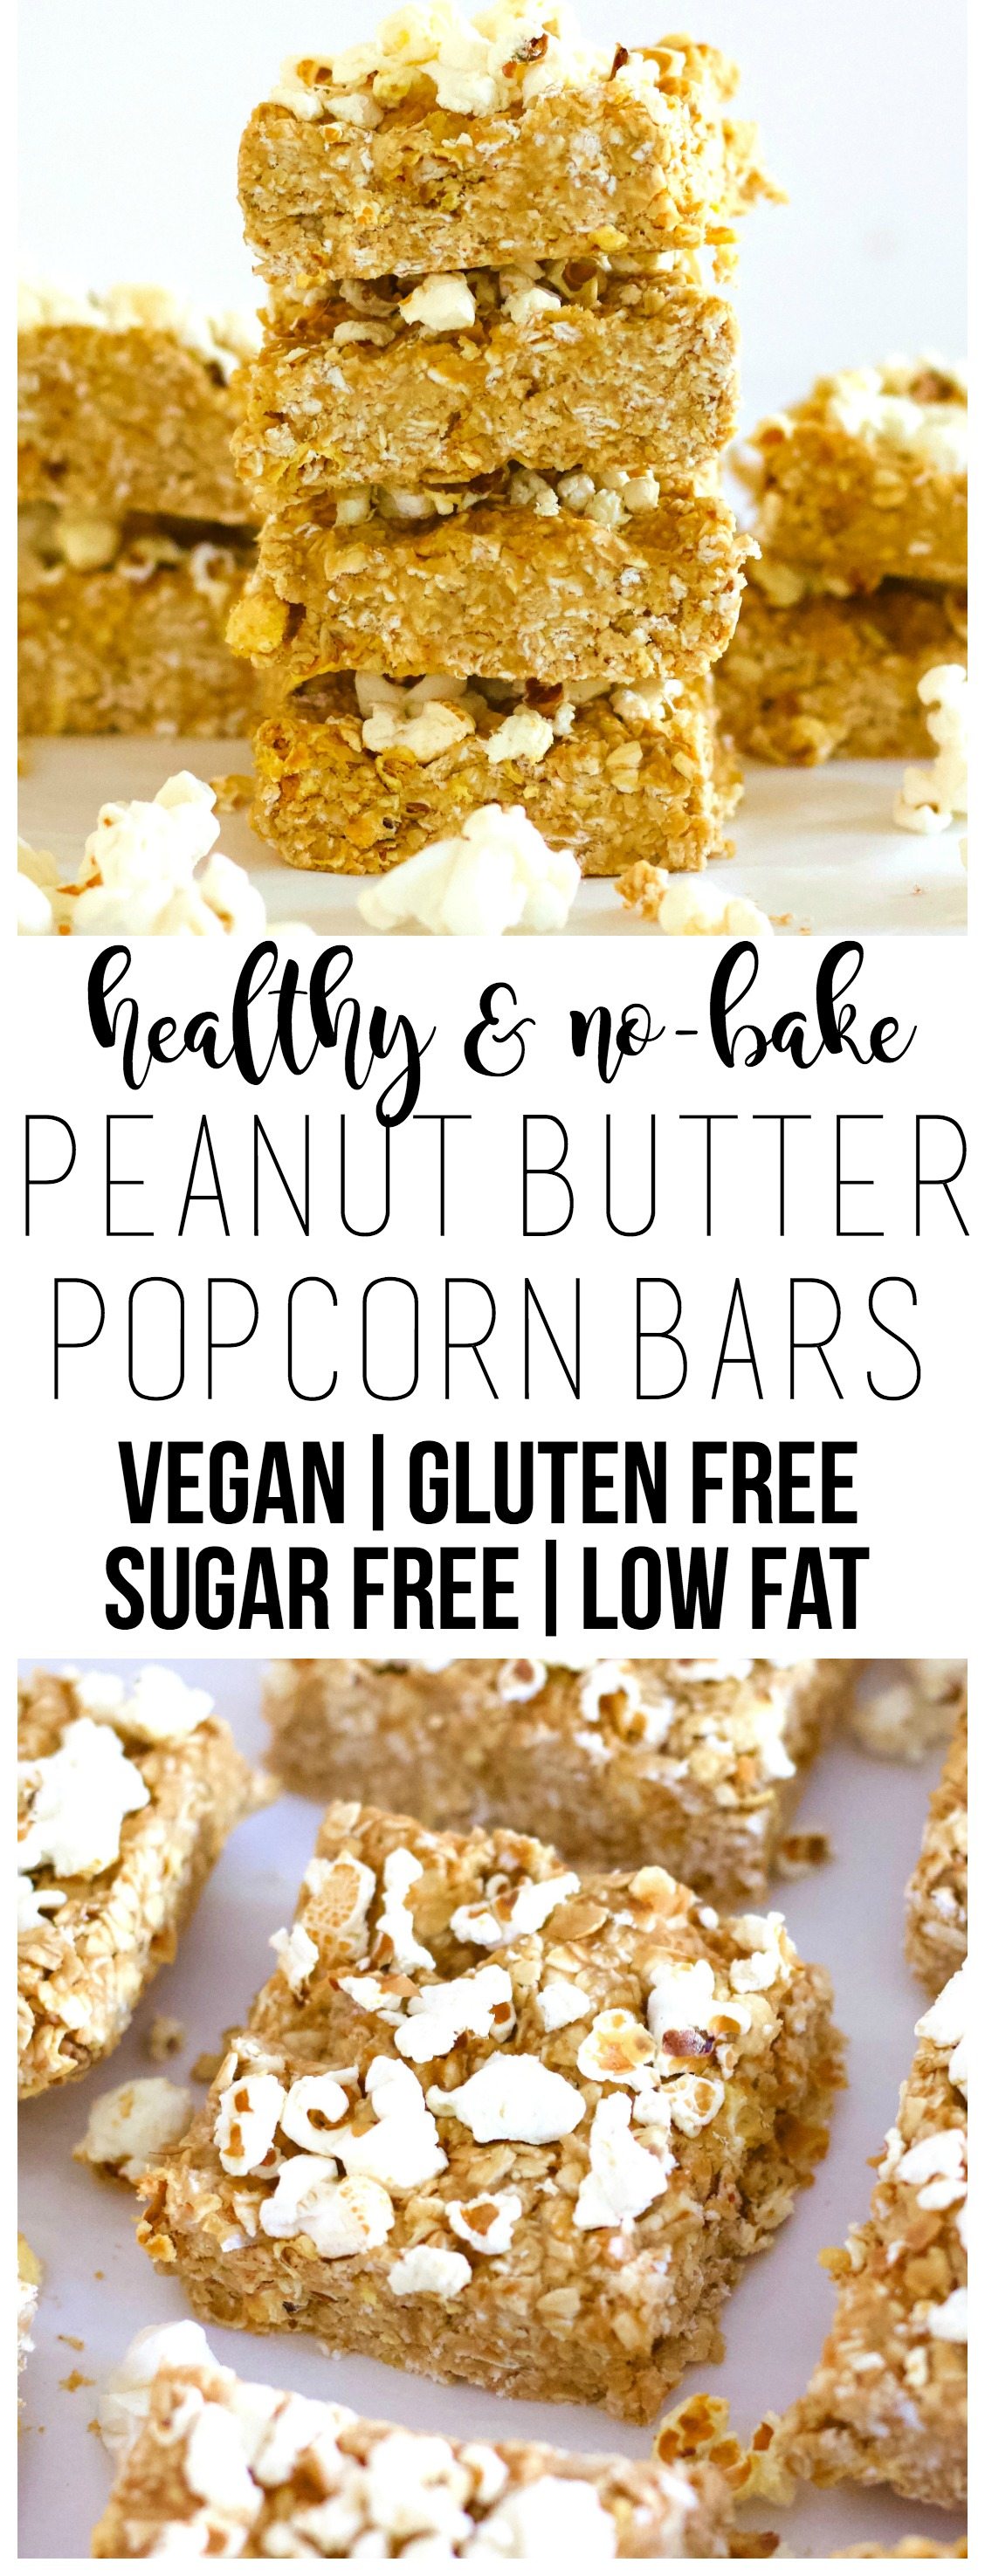 These No-Bake Peanut Butter Popcorn bars are totally delicious! They're super healthy and the perfect kid-friendly snack or treat. They are vegan, gluten-free, low-fat, dairy-free and sugar-free.